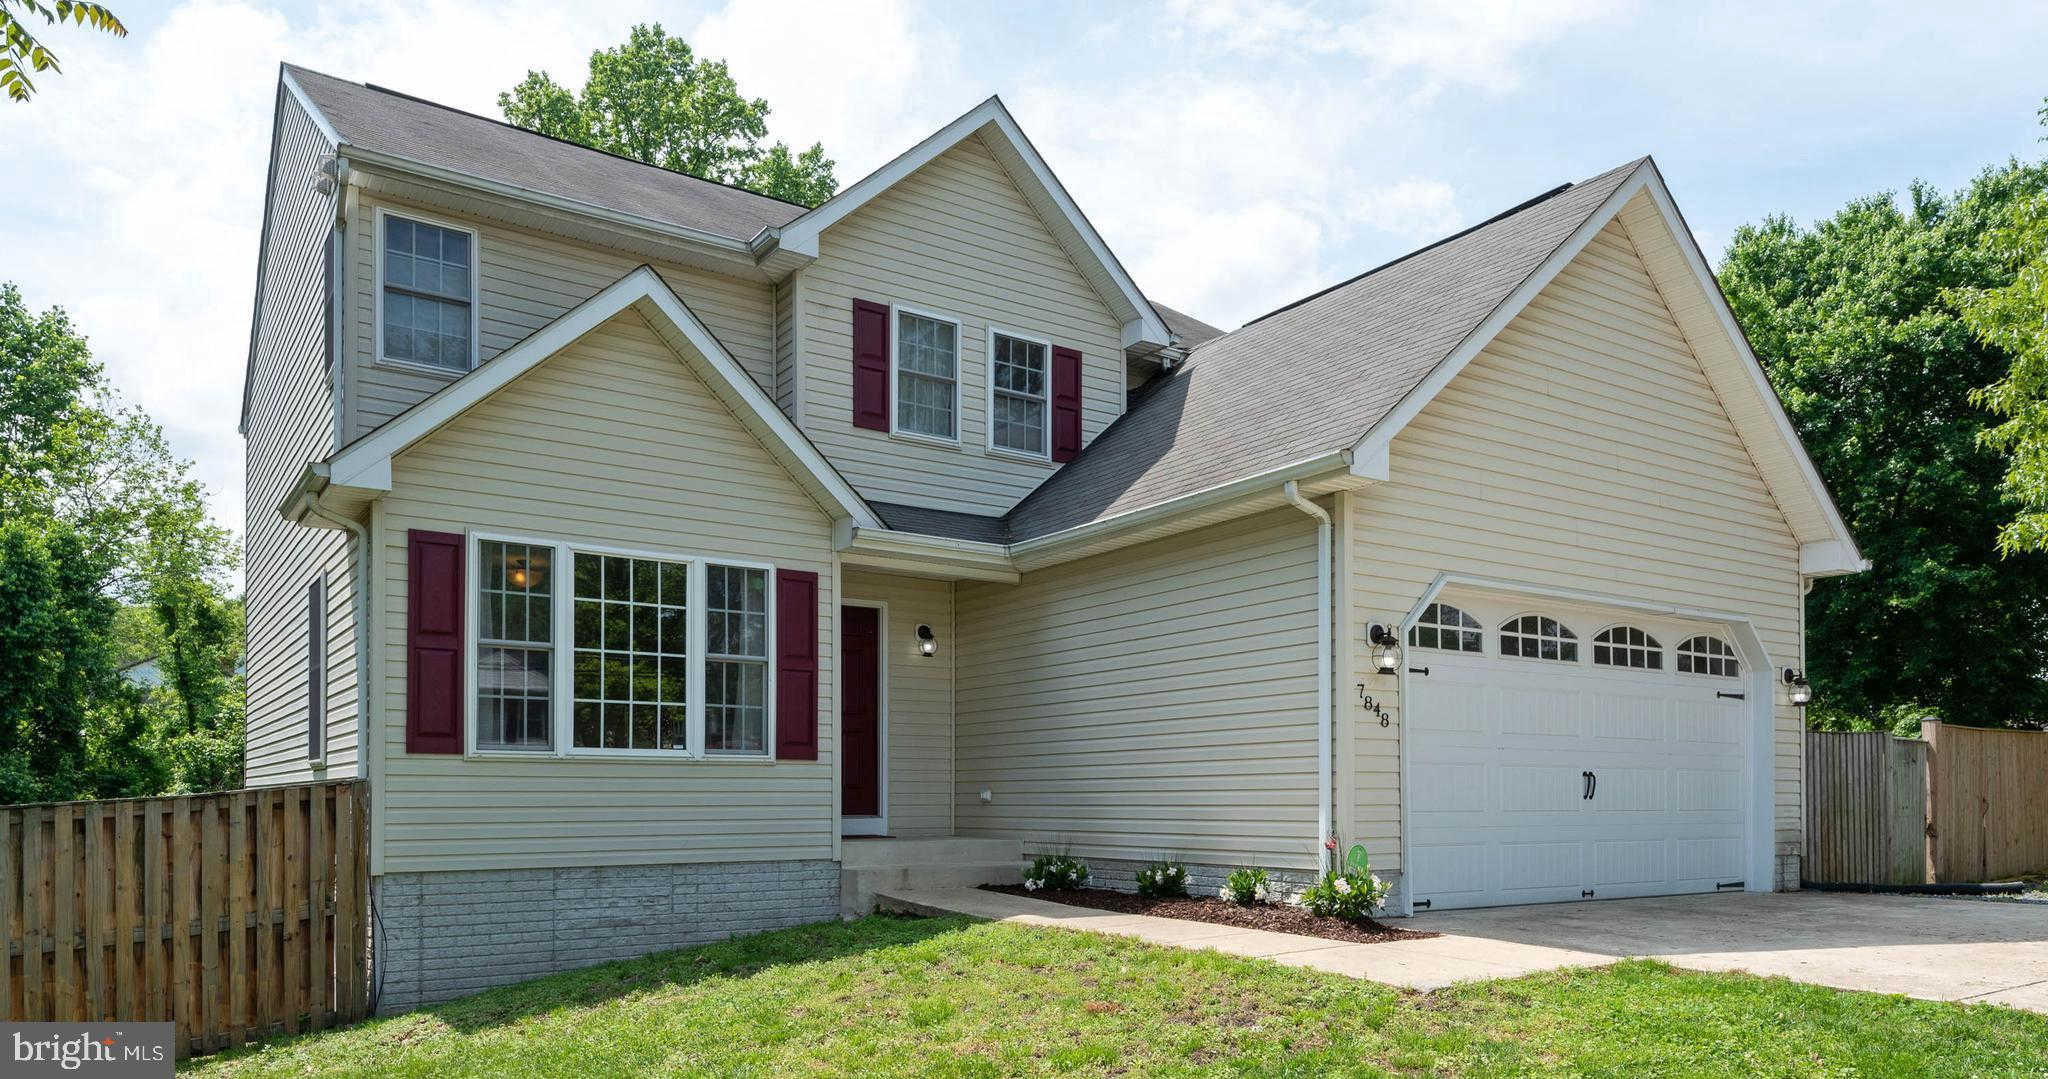 7848 Outing Avenue, Pasadena, MD 21122 now has a new price of $415,000!